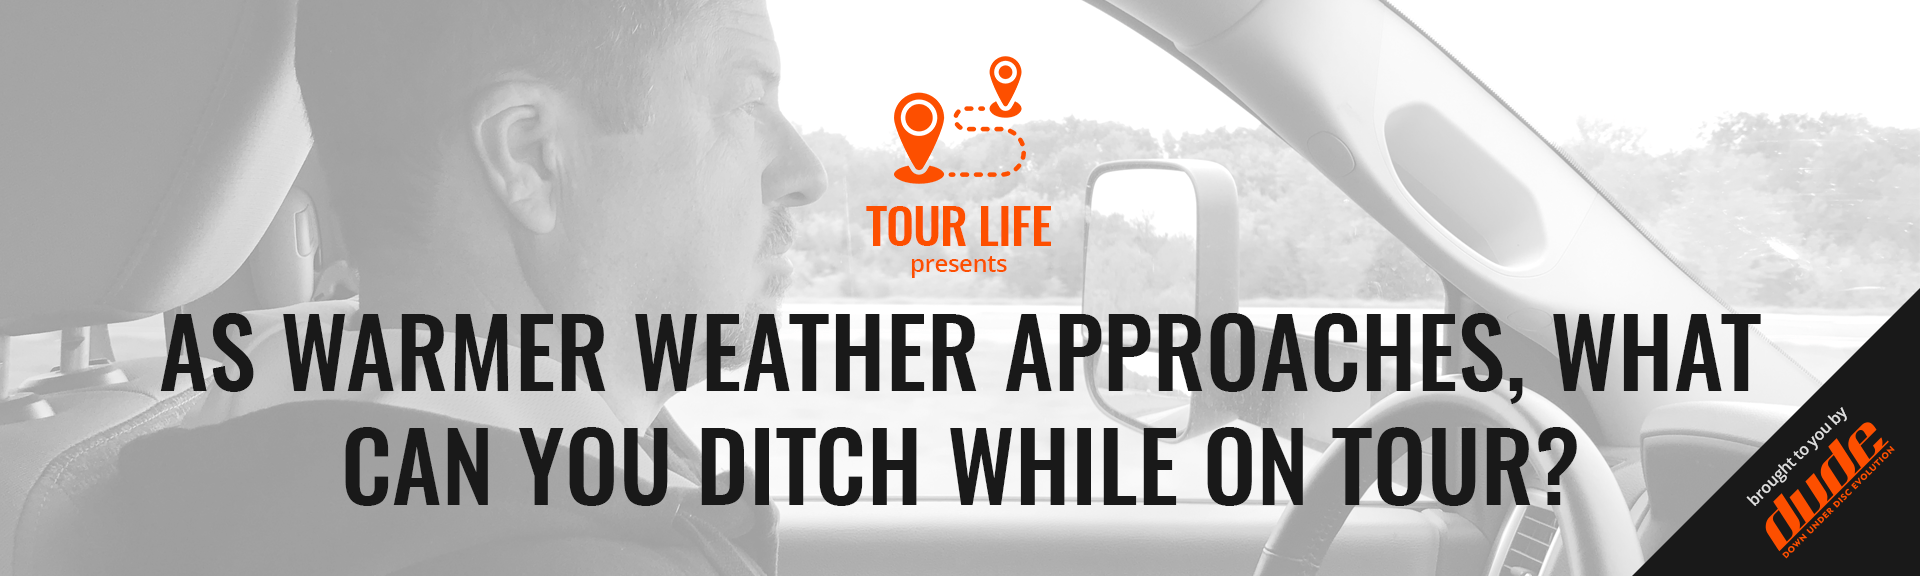 Tour life -As Warmer Weather Approaches What Can You Ditch While On Tour Warmer, Weather, Tour, Ditch, disc golf